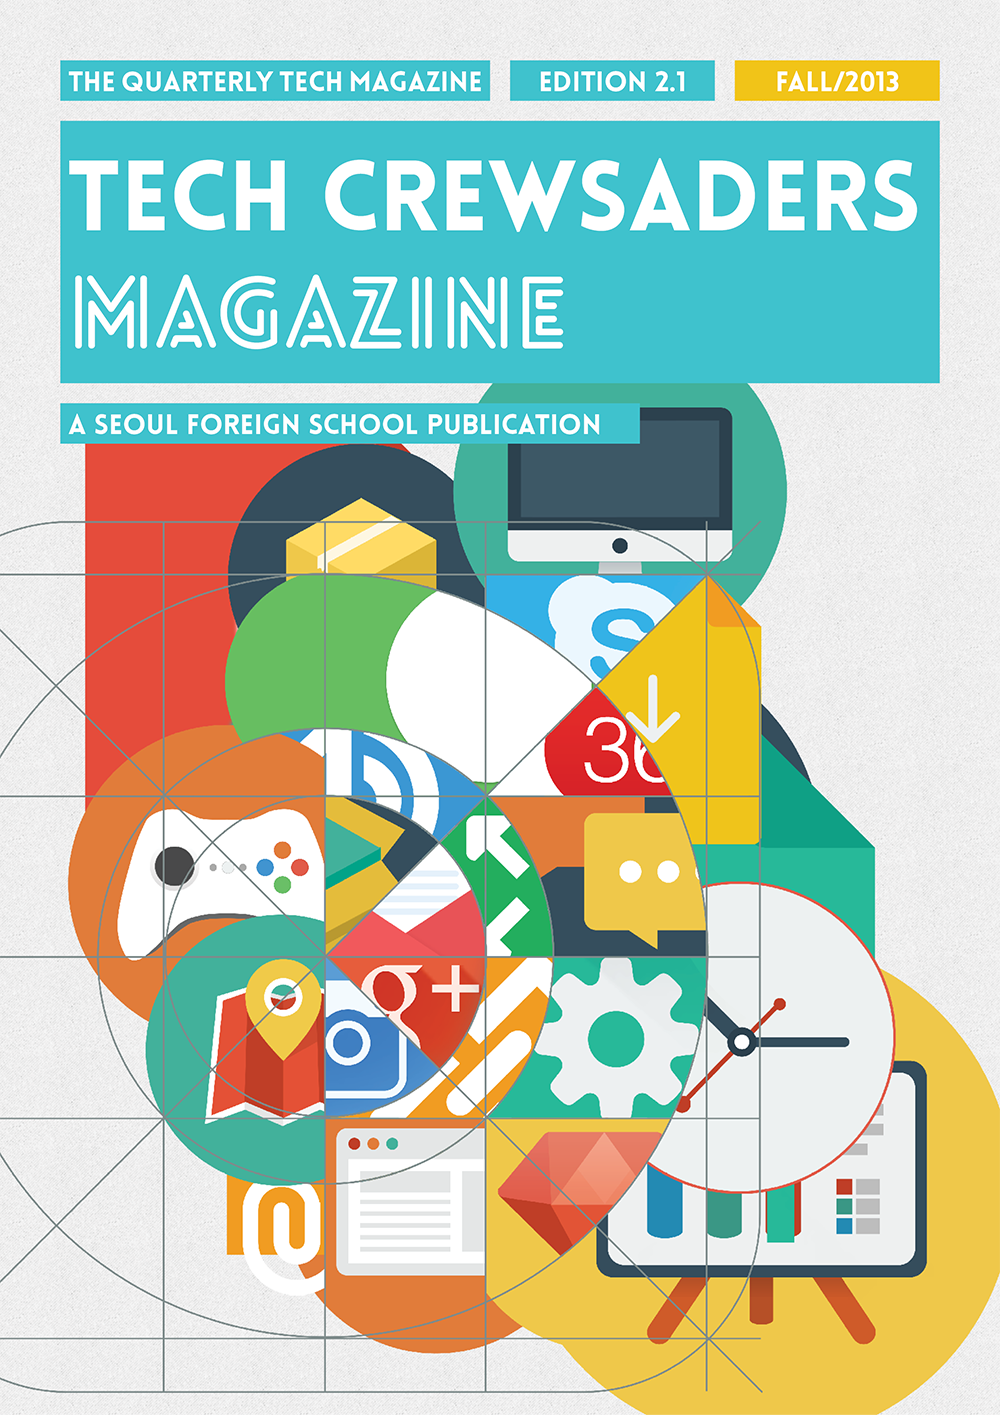 Tech Crewsader Magazine Q1 2013 Fall Issue Cover